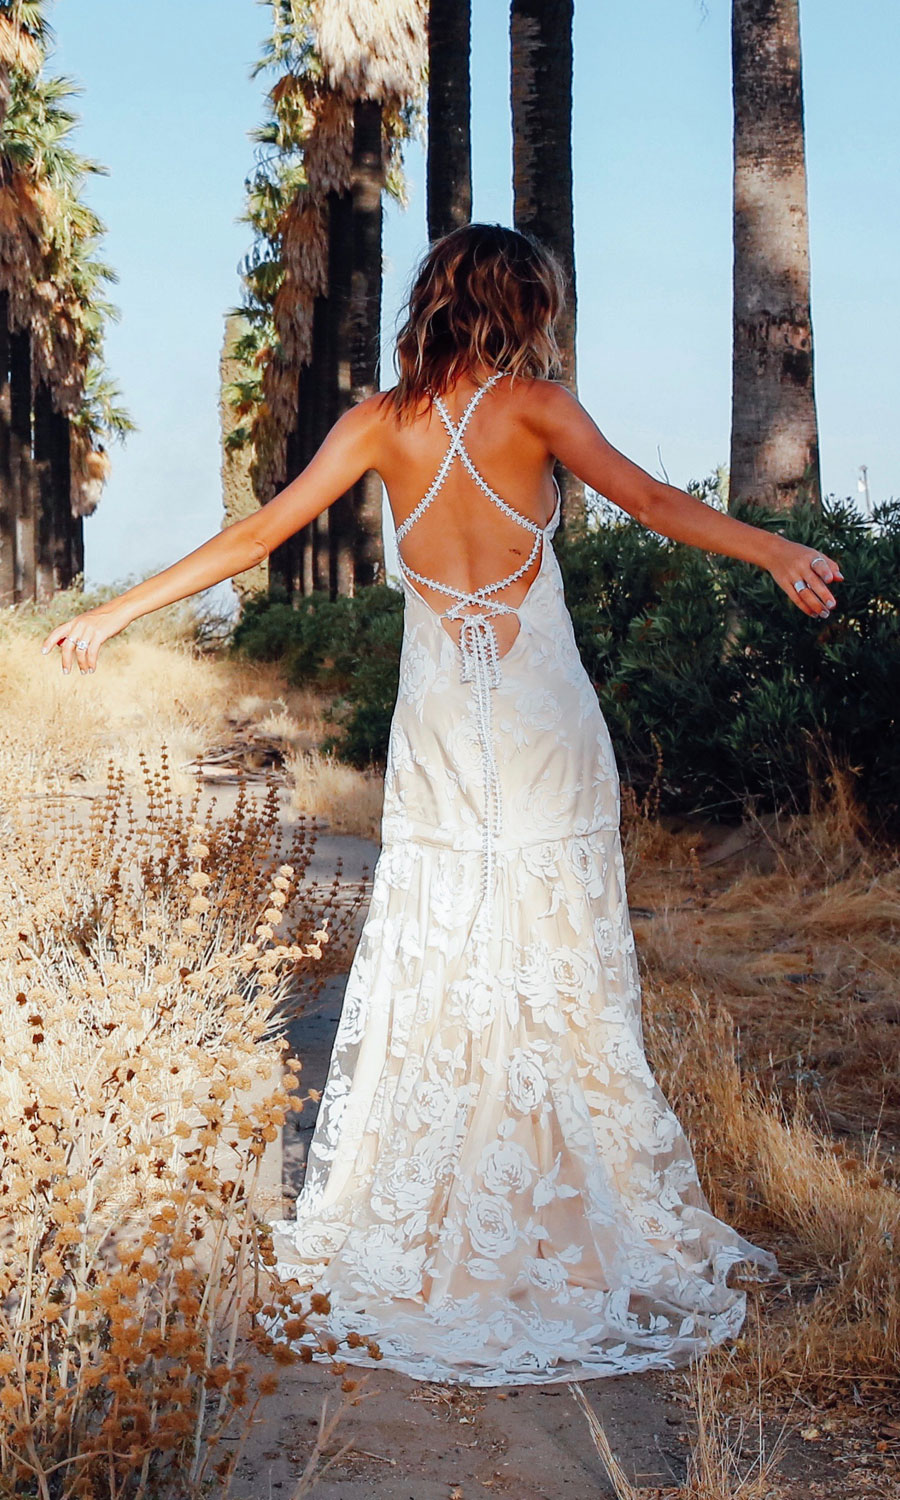 Daughters Of Simone 'Sunshine of My Love' Wedding Dresses for Bad-ass Women!